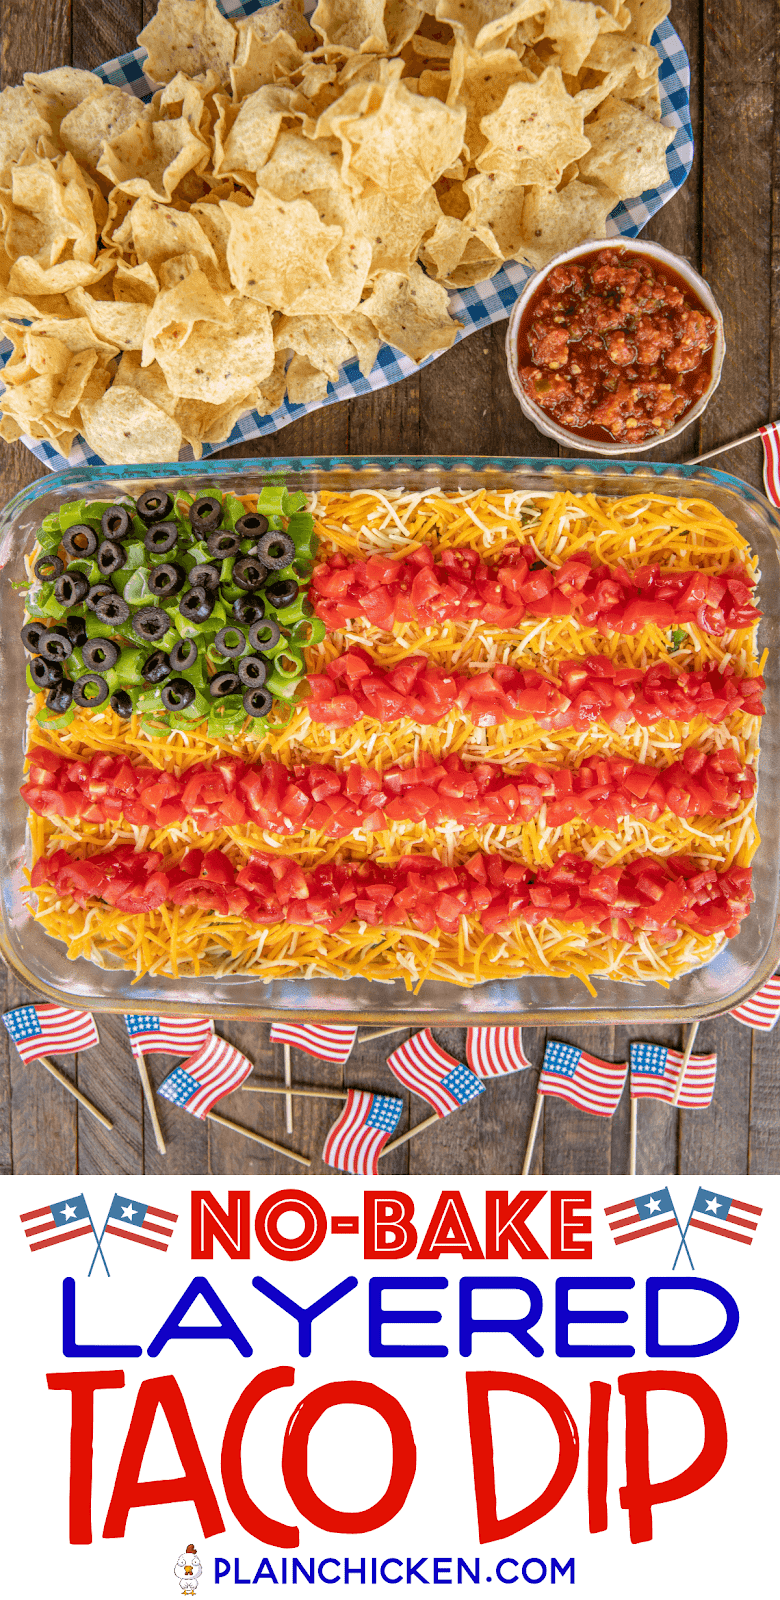 taco dip in shape of flag with chips and salsa